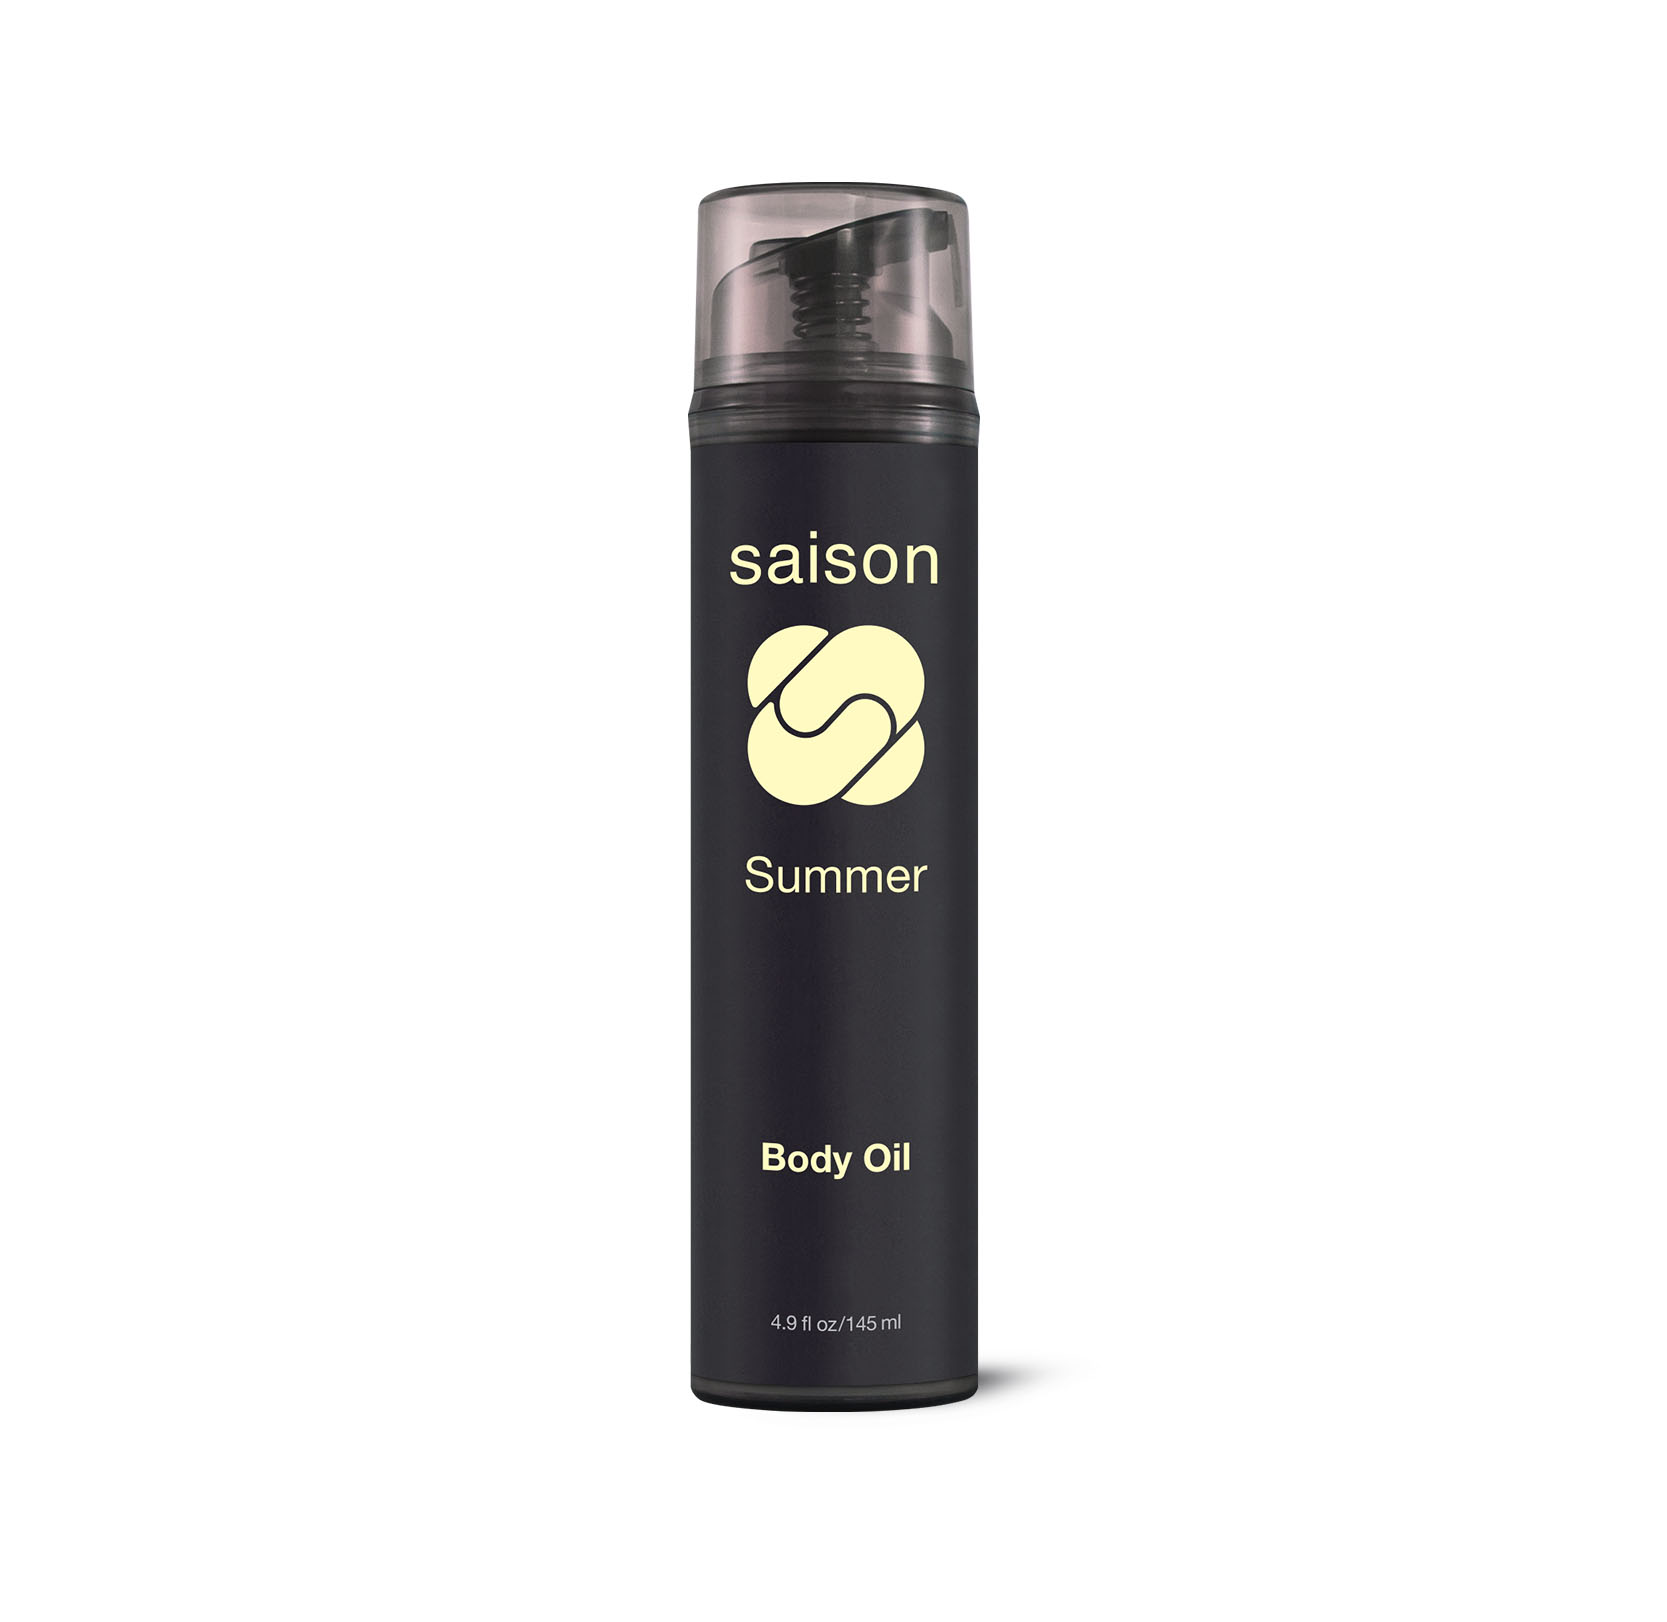 Saison Summer Body Oil